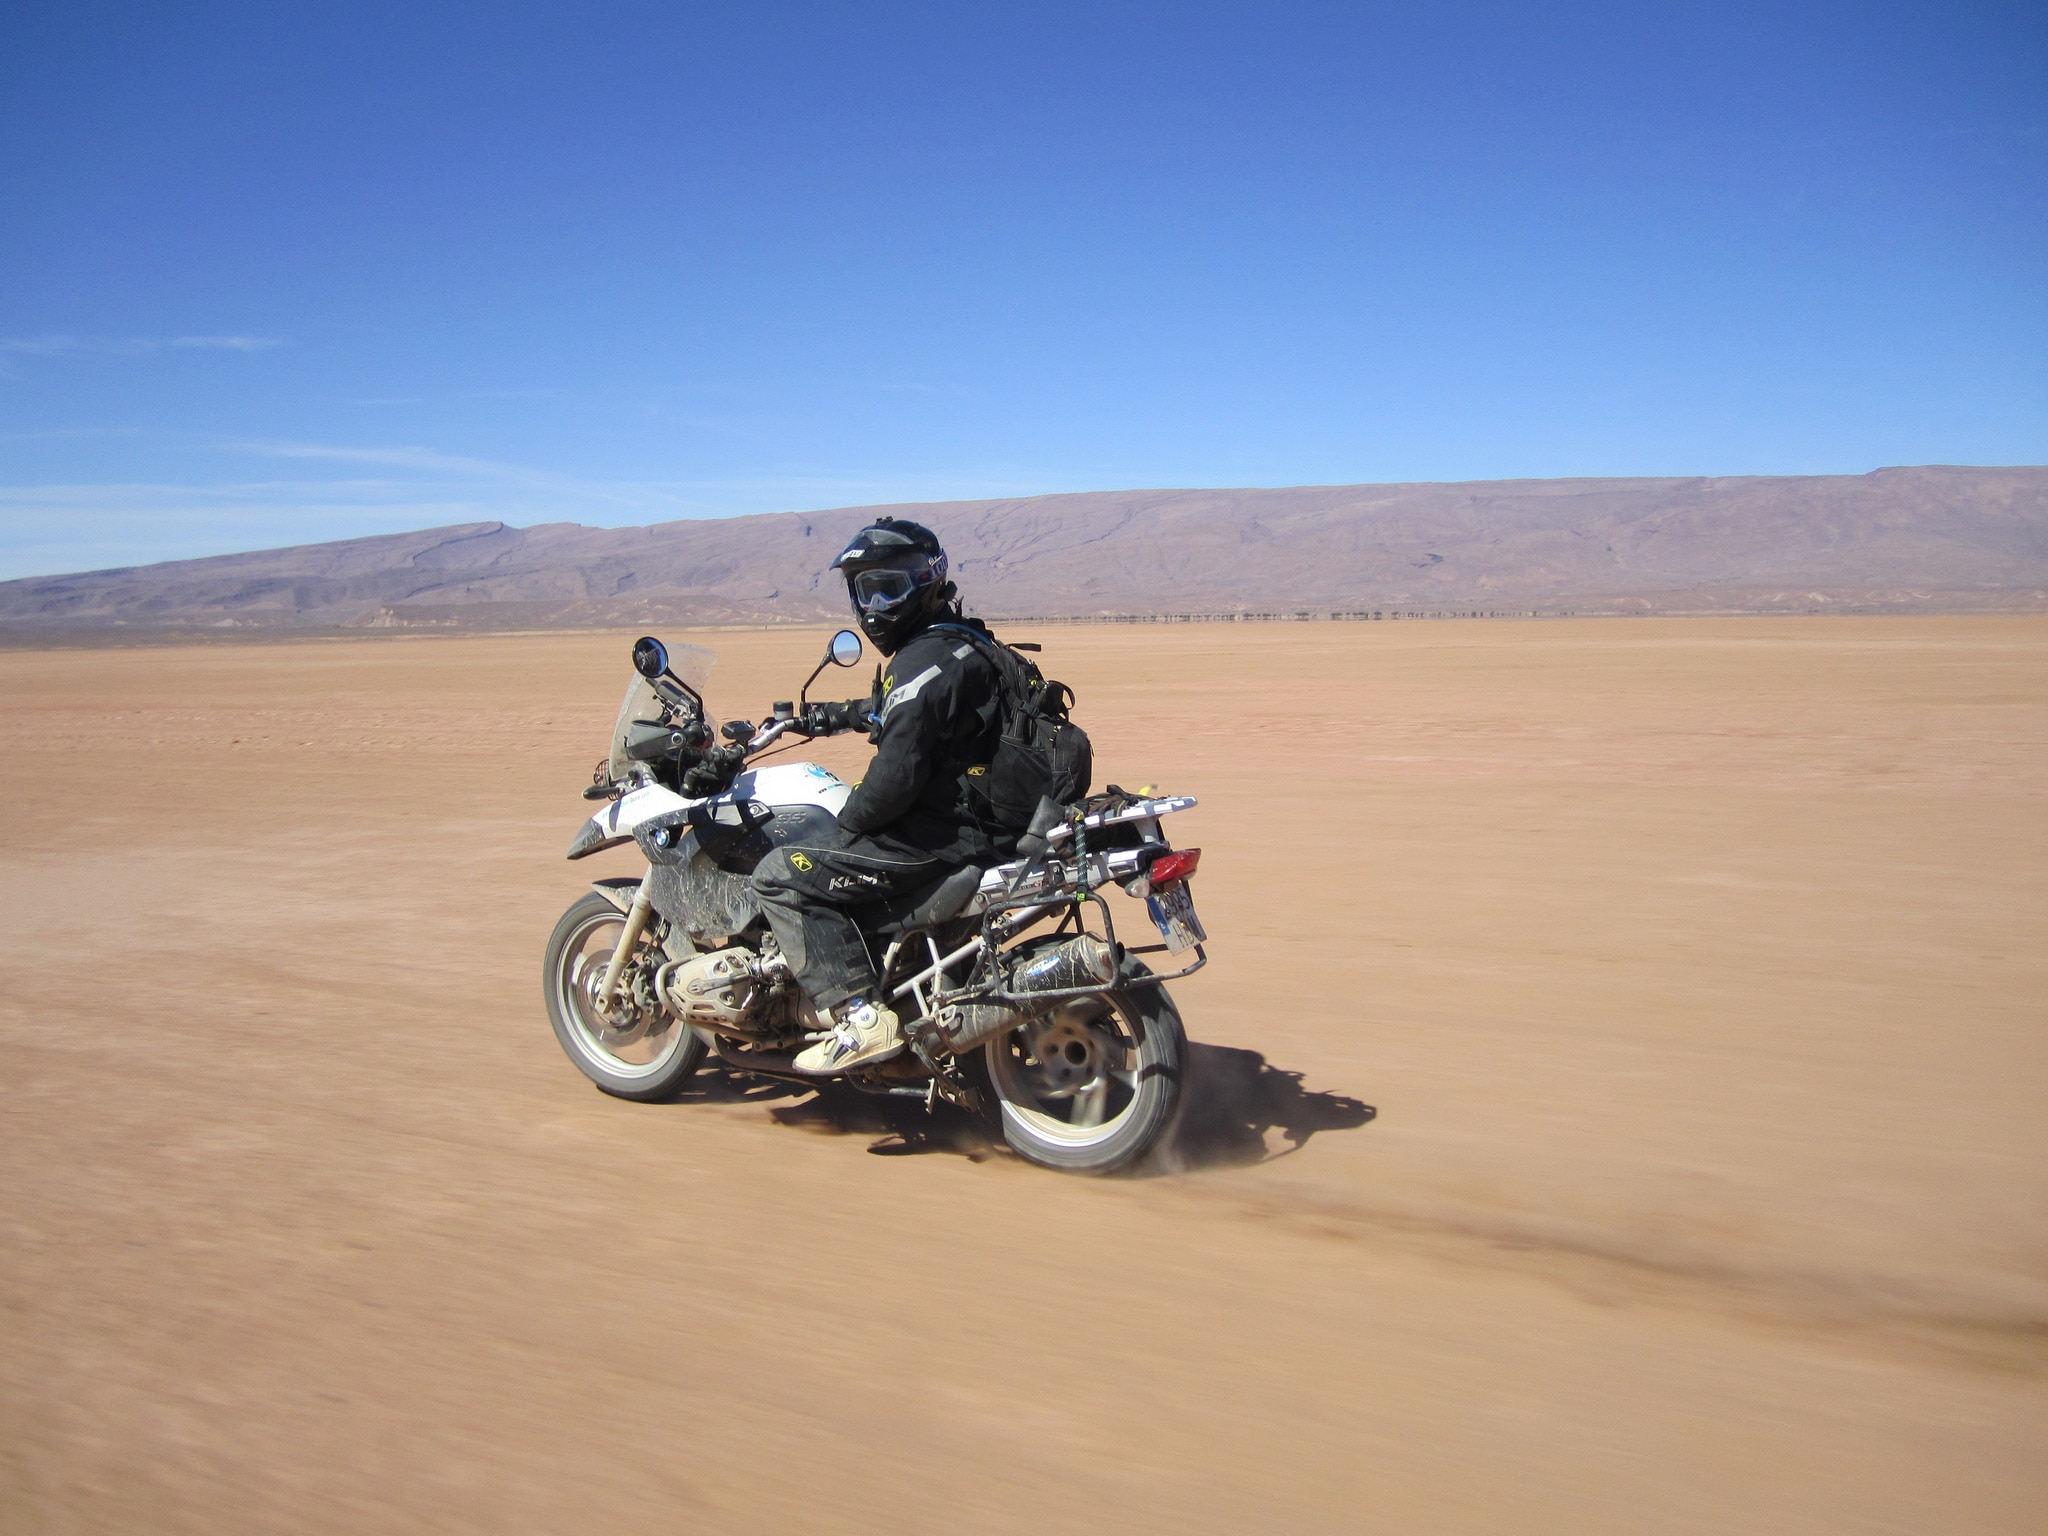 Most adventurous forms of transportation - Motorcycle